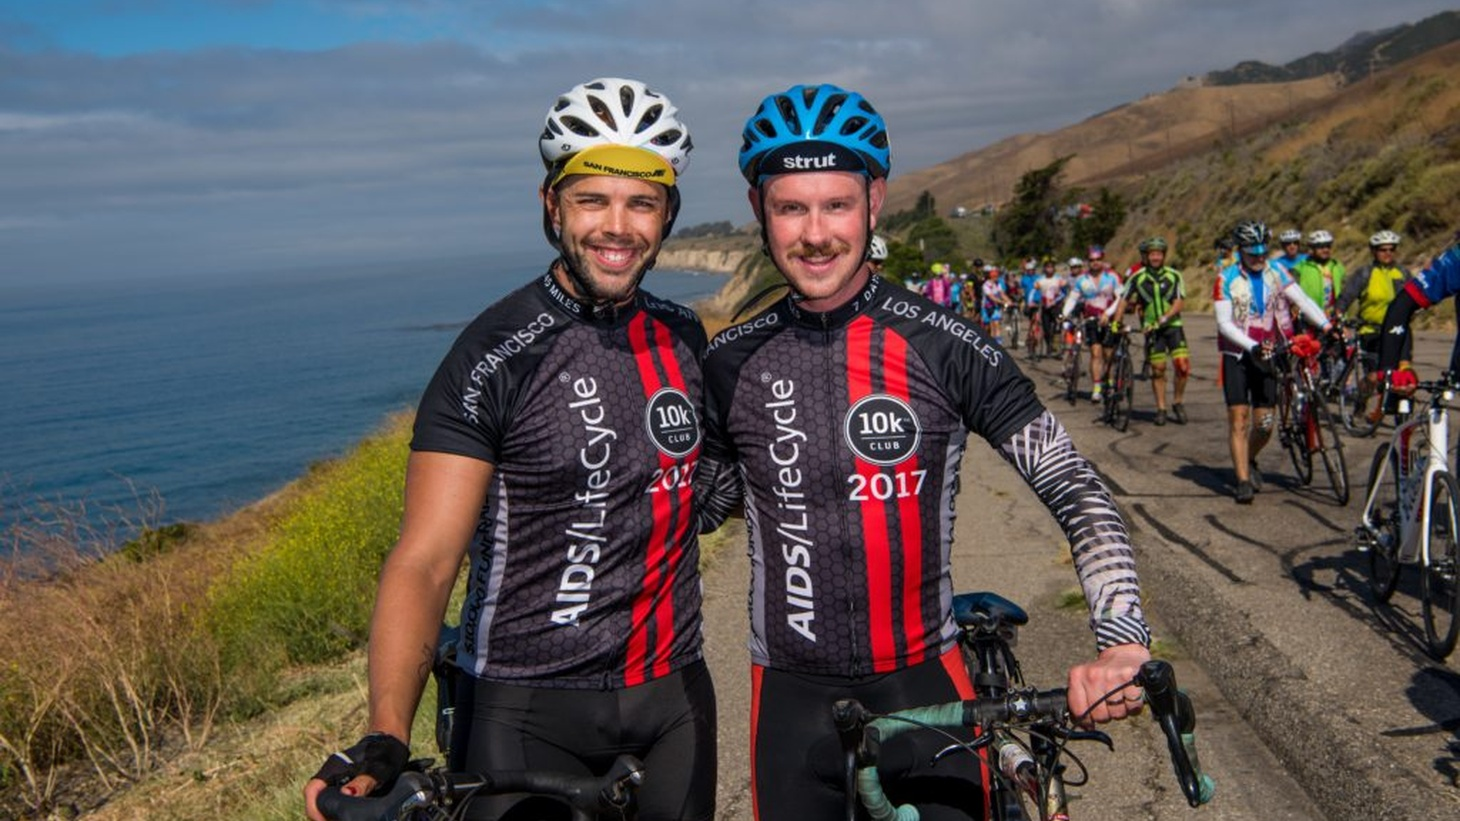 The AIDS/LifeCycle, a 545-mile bike ride from San Francisco to Los Angeles which raises awareness and funds for the ongoing HIV/AIDS epidemic, kicks off this weekend.